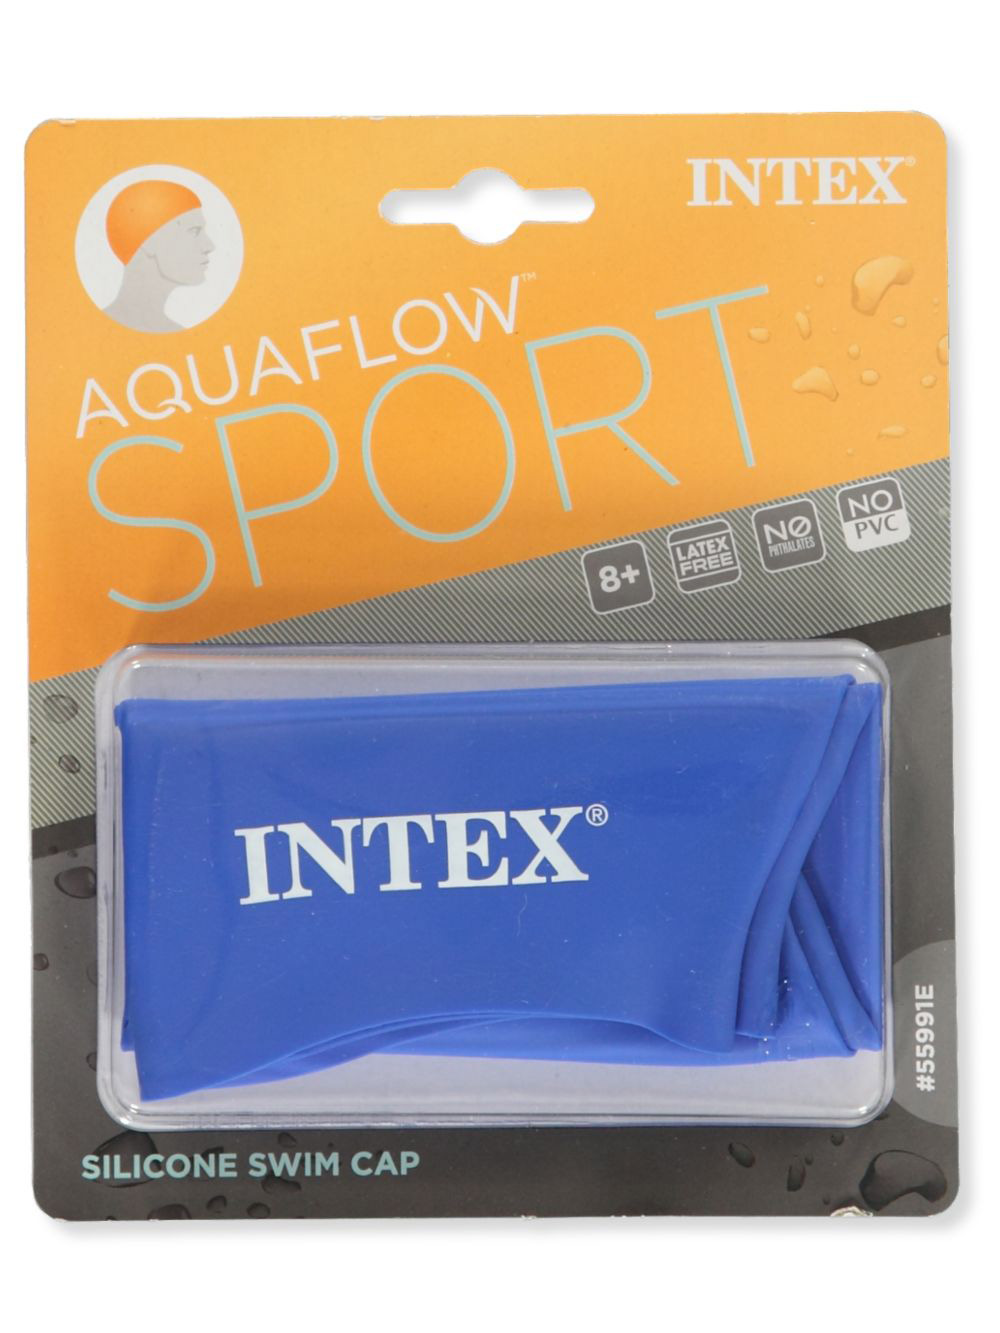 Intex Sporting Goods